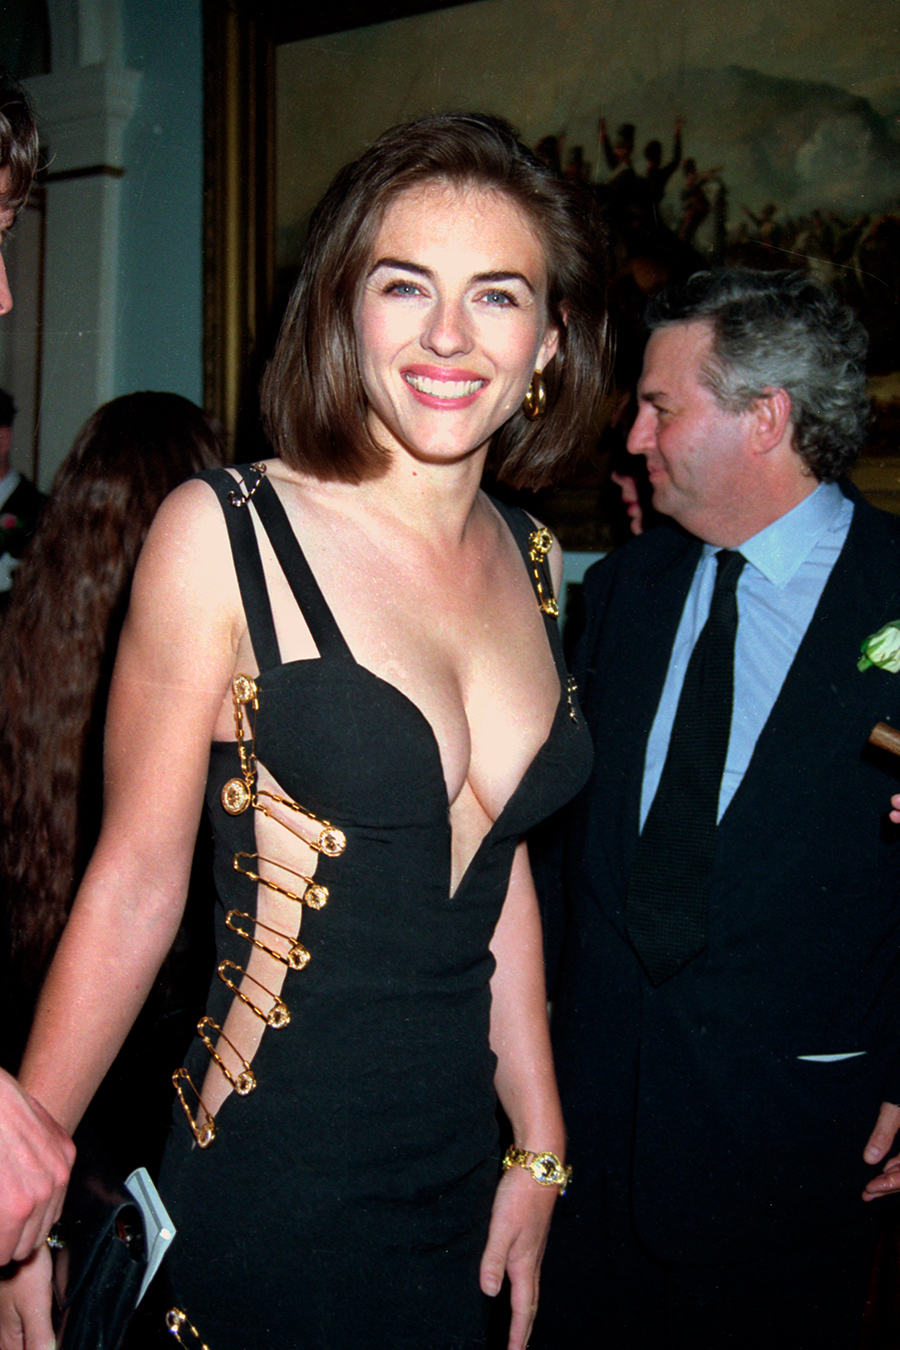 elizabeth-hurley-versace-foto-getty-images